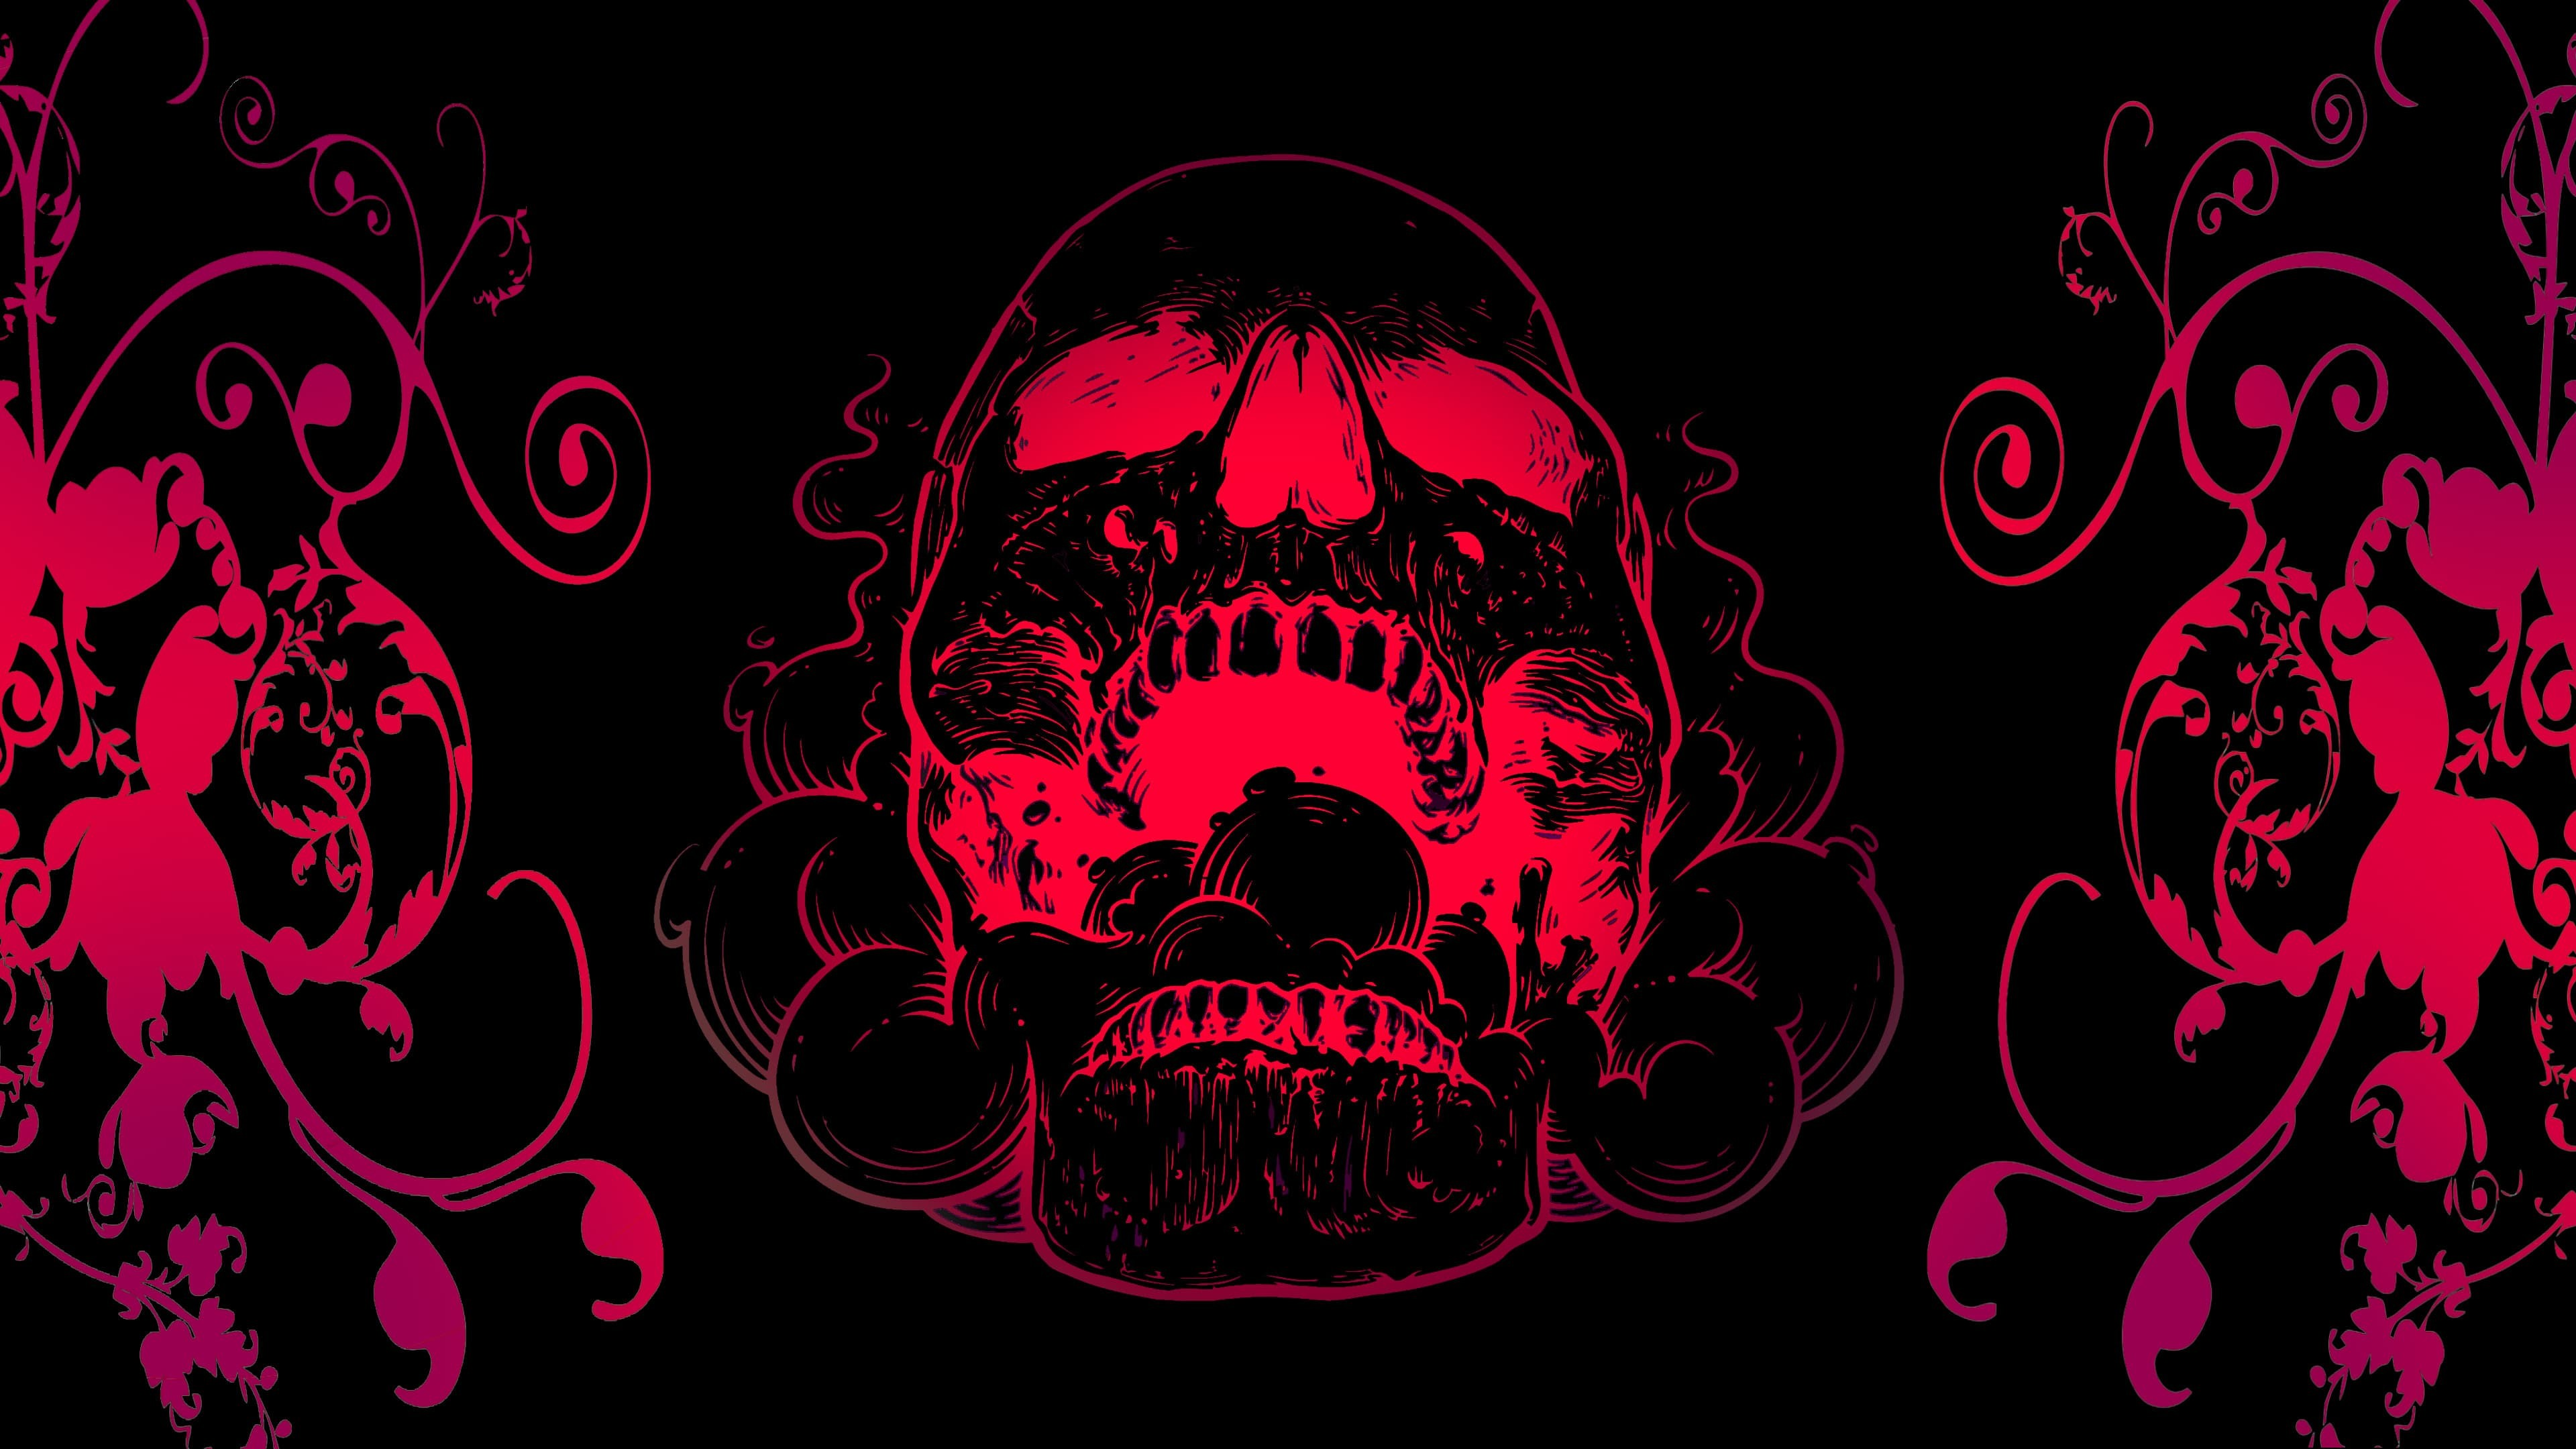 3840x2160 4K Red Skull Flowers Black Background - Image #2763 - Licence: Free for  Personal